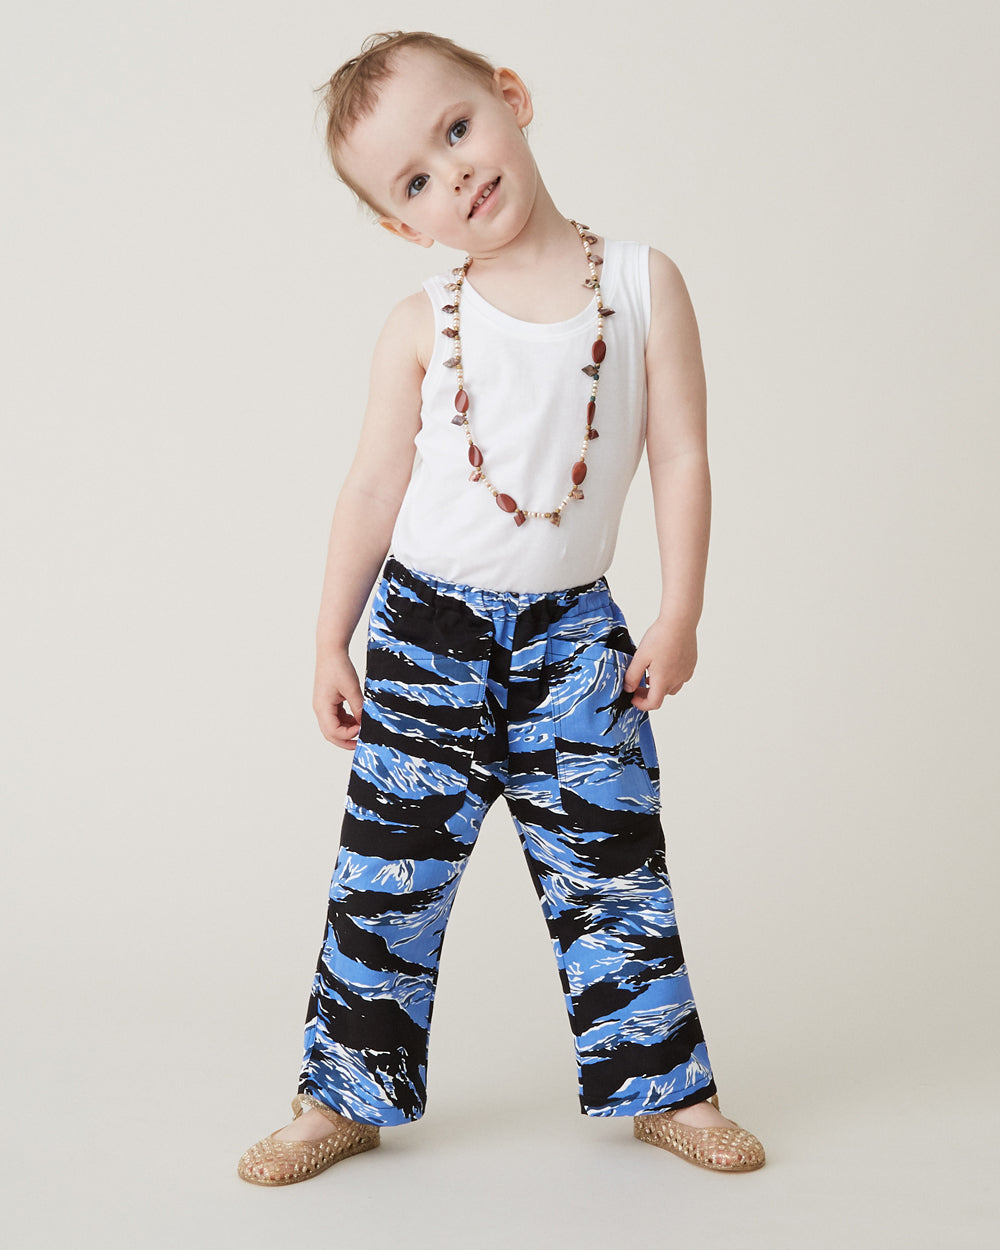 Chatham Trouser in Blue Tiger Camo